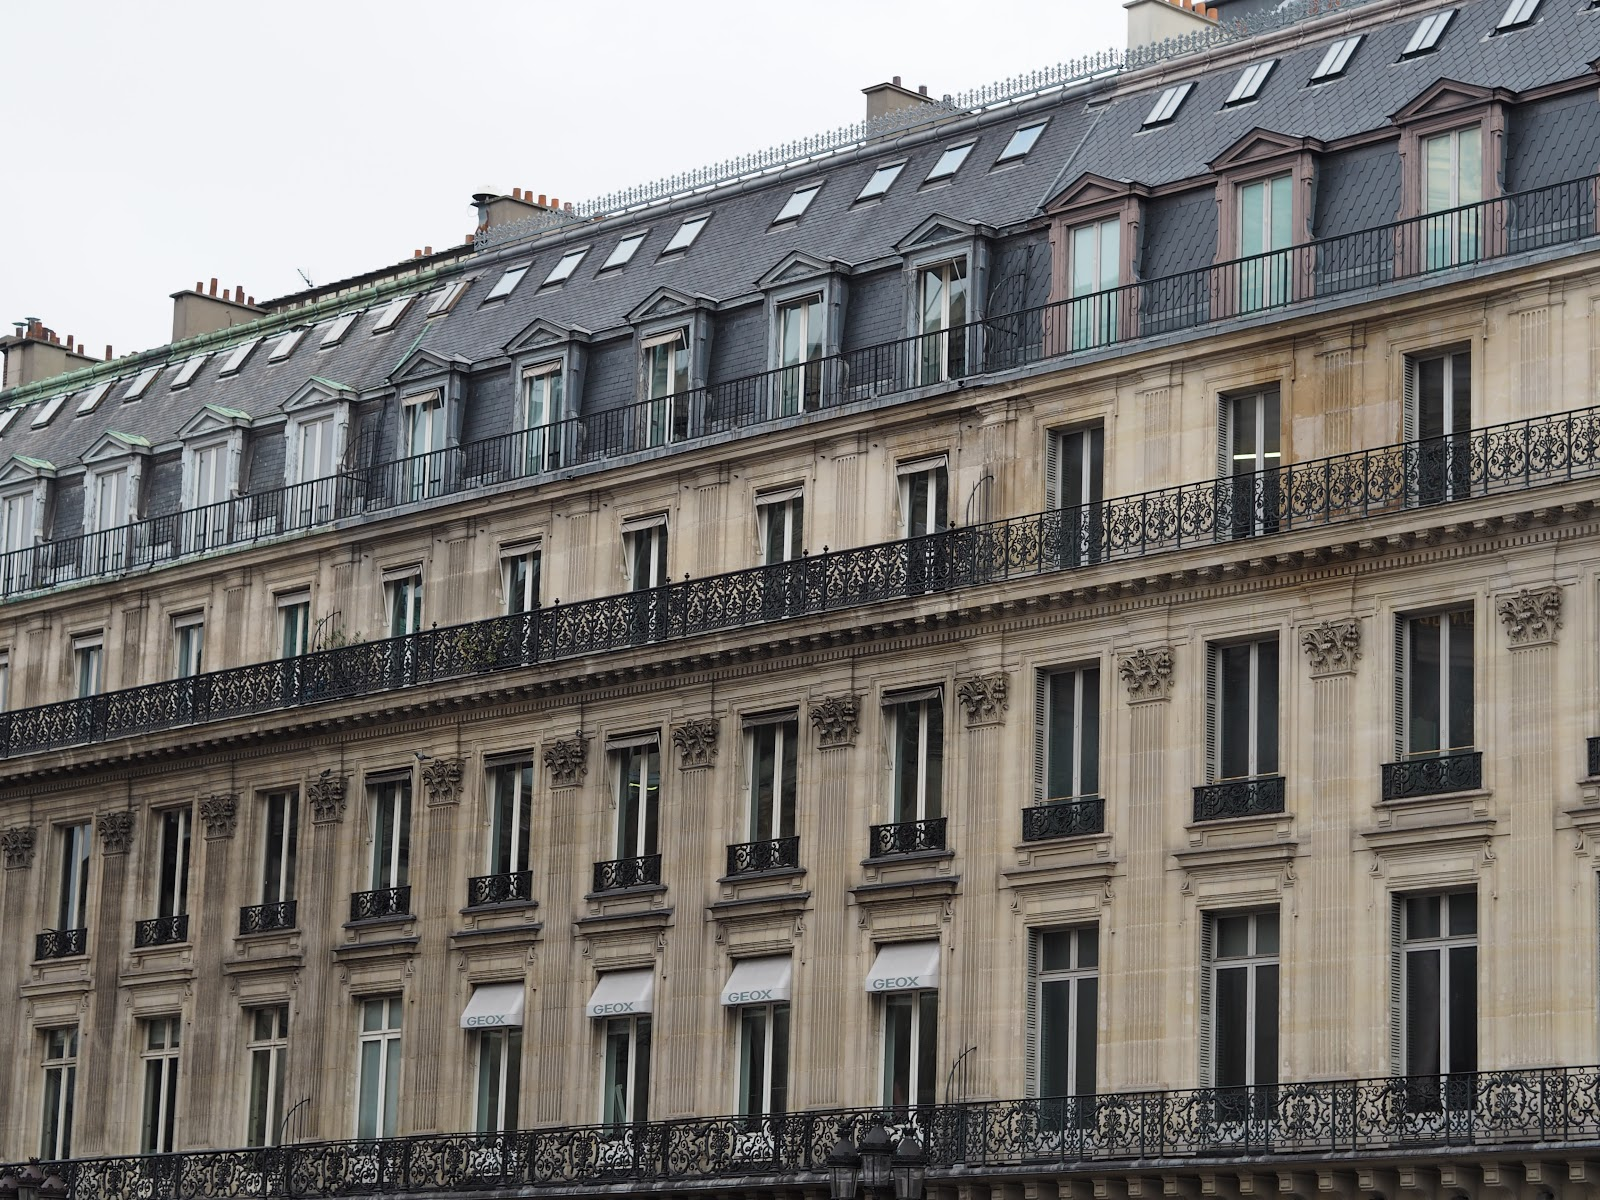 Paris Architecture, Juliet Balcony and grey slate roof